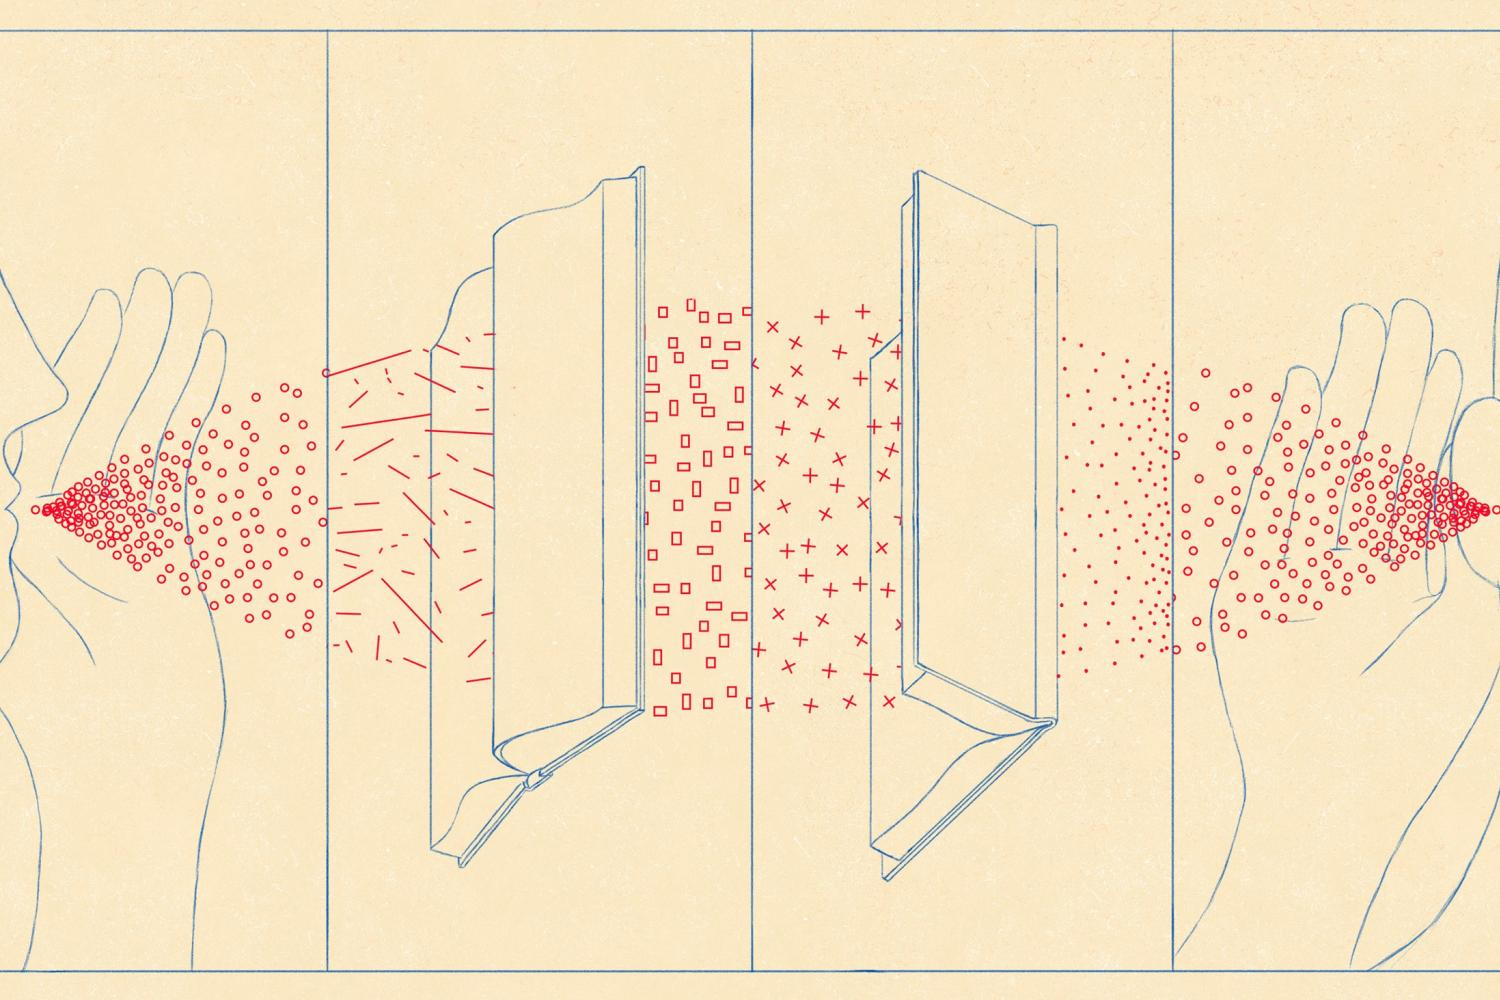 Illustration by Daniel Liévano as originally seen on The New Yorker website. Illustration of an outline of a person speaking into a book which transmits to another book and into another outline of a person listening to convey translated writing.